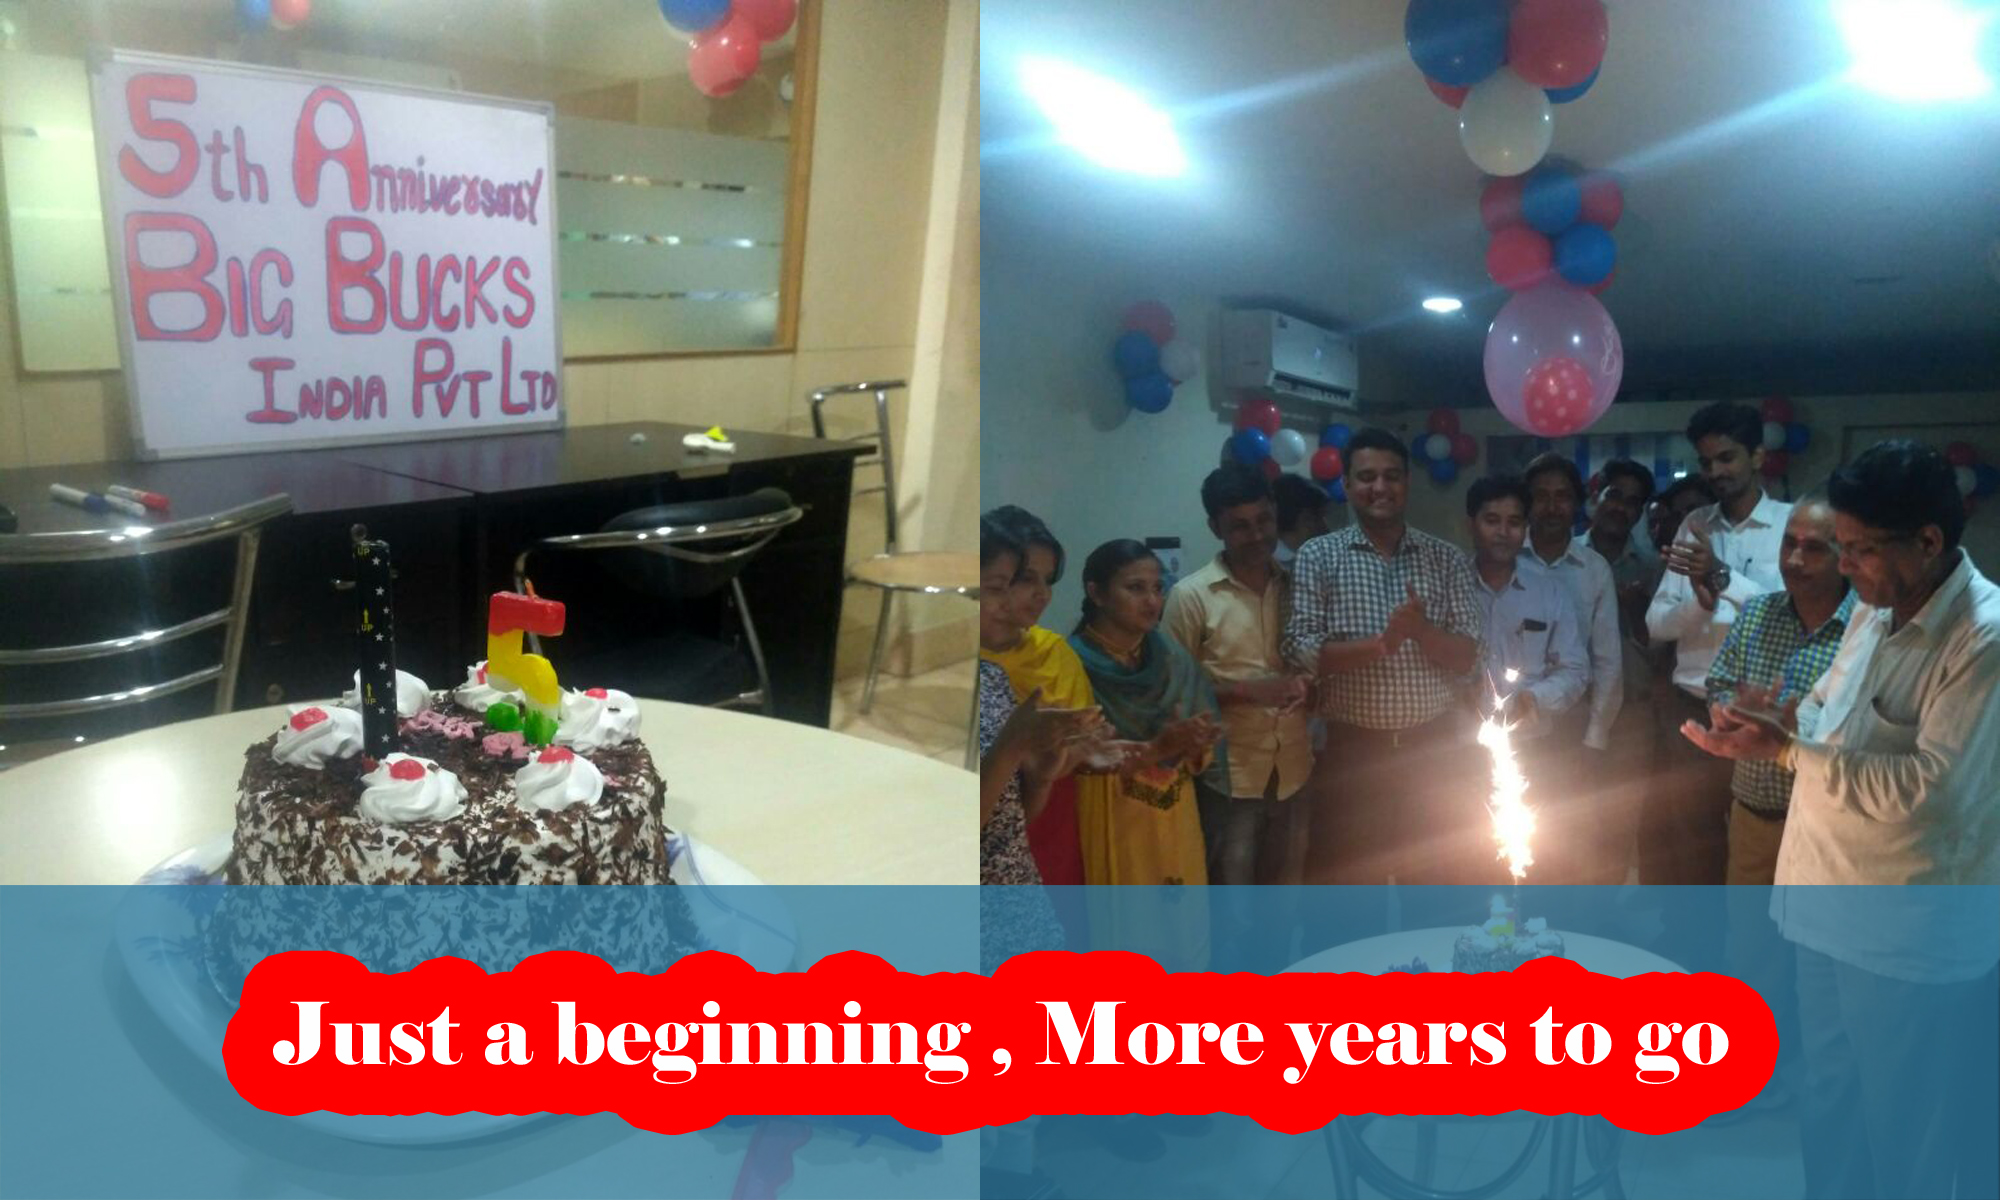 Big Bucks Pvt Ltd's 5th Birthday Celebration